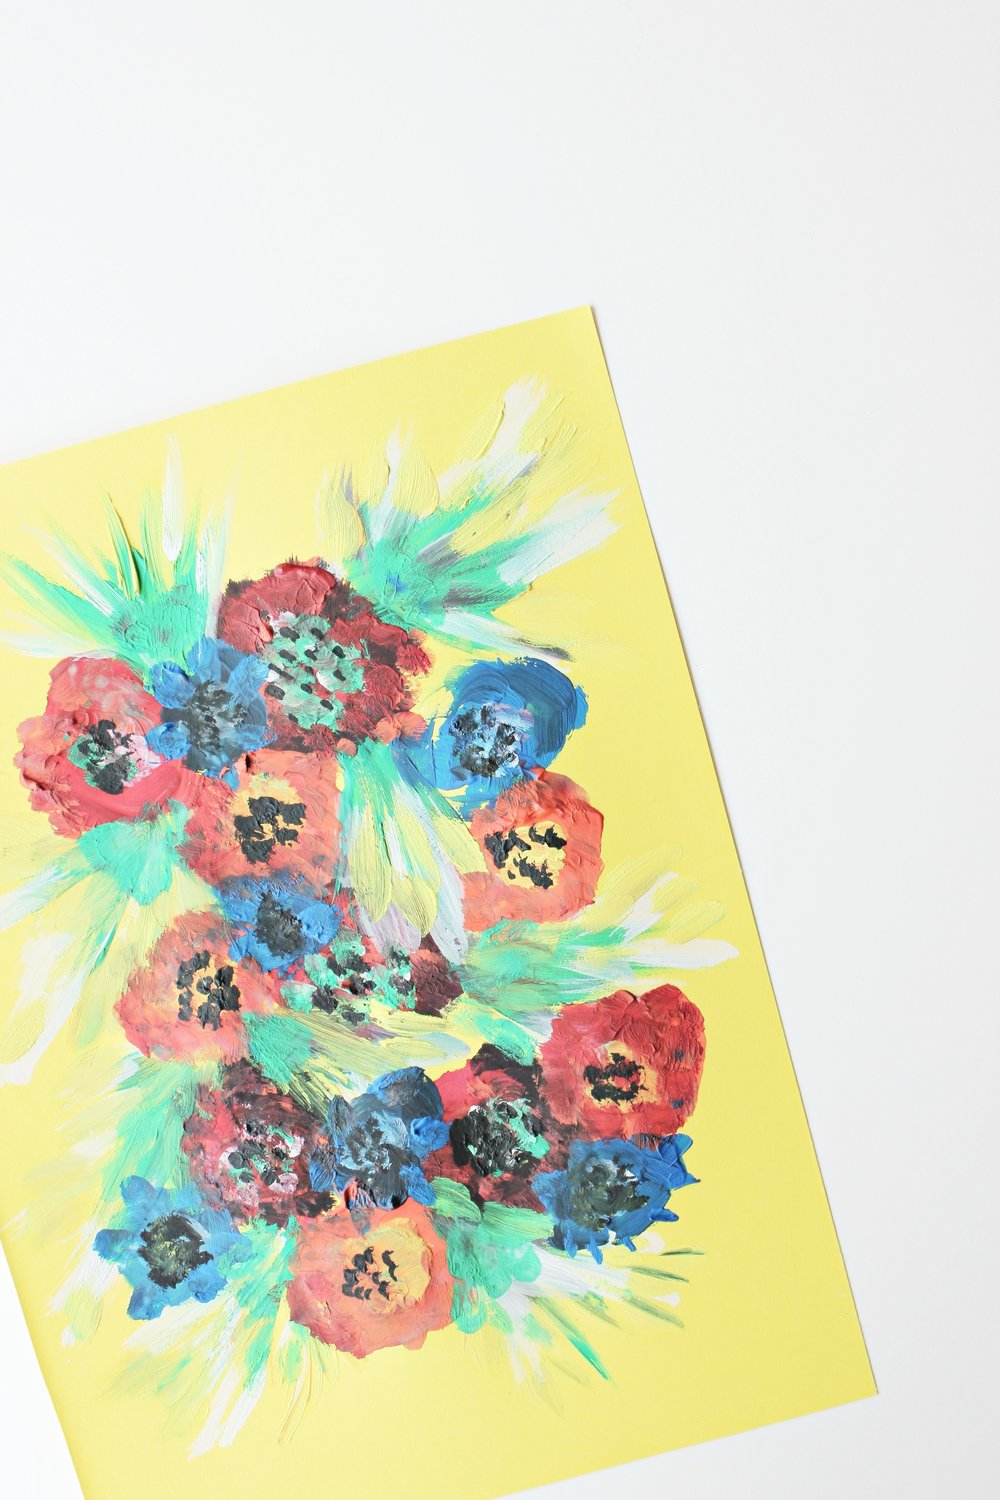 Flowers painted with tempera on colored cardboard